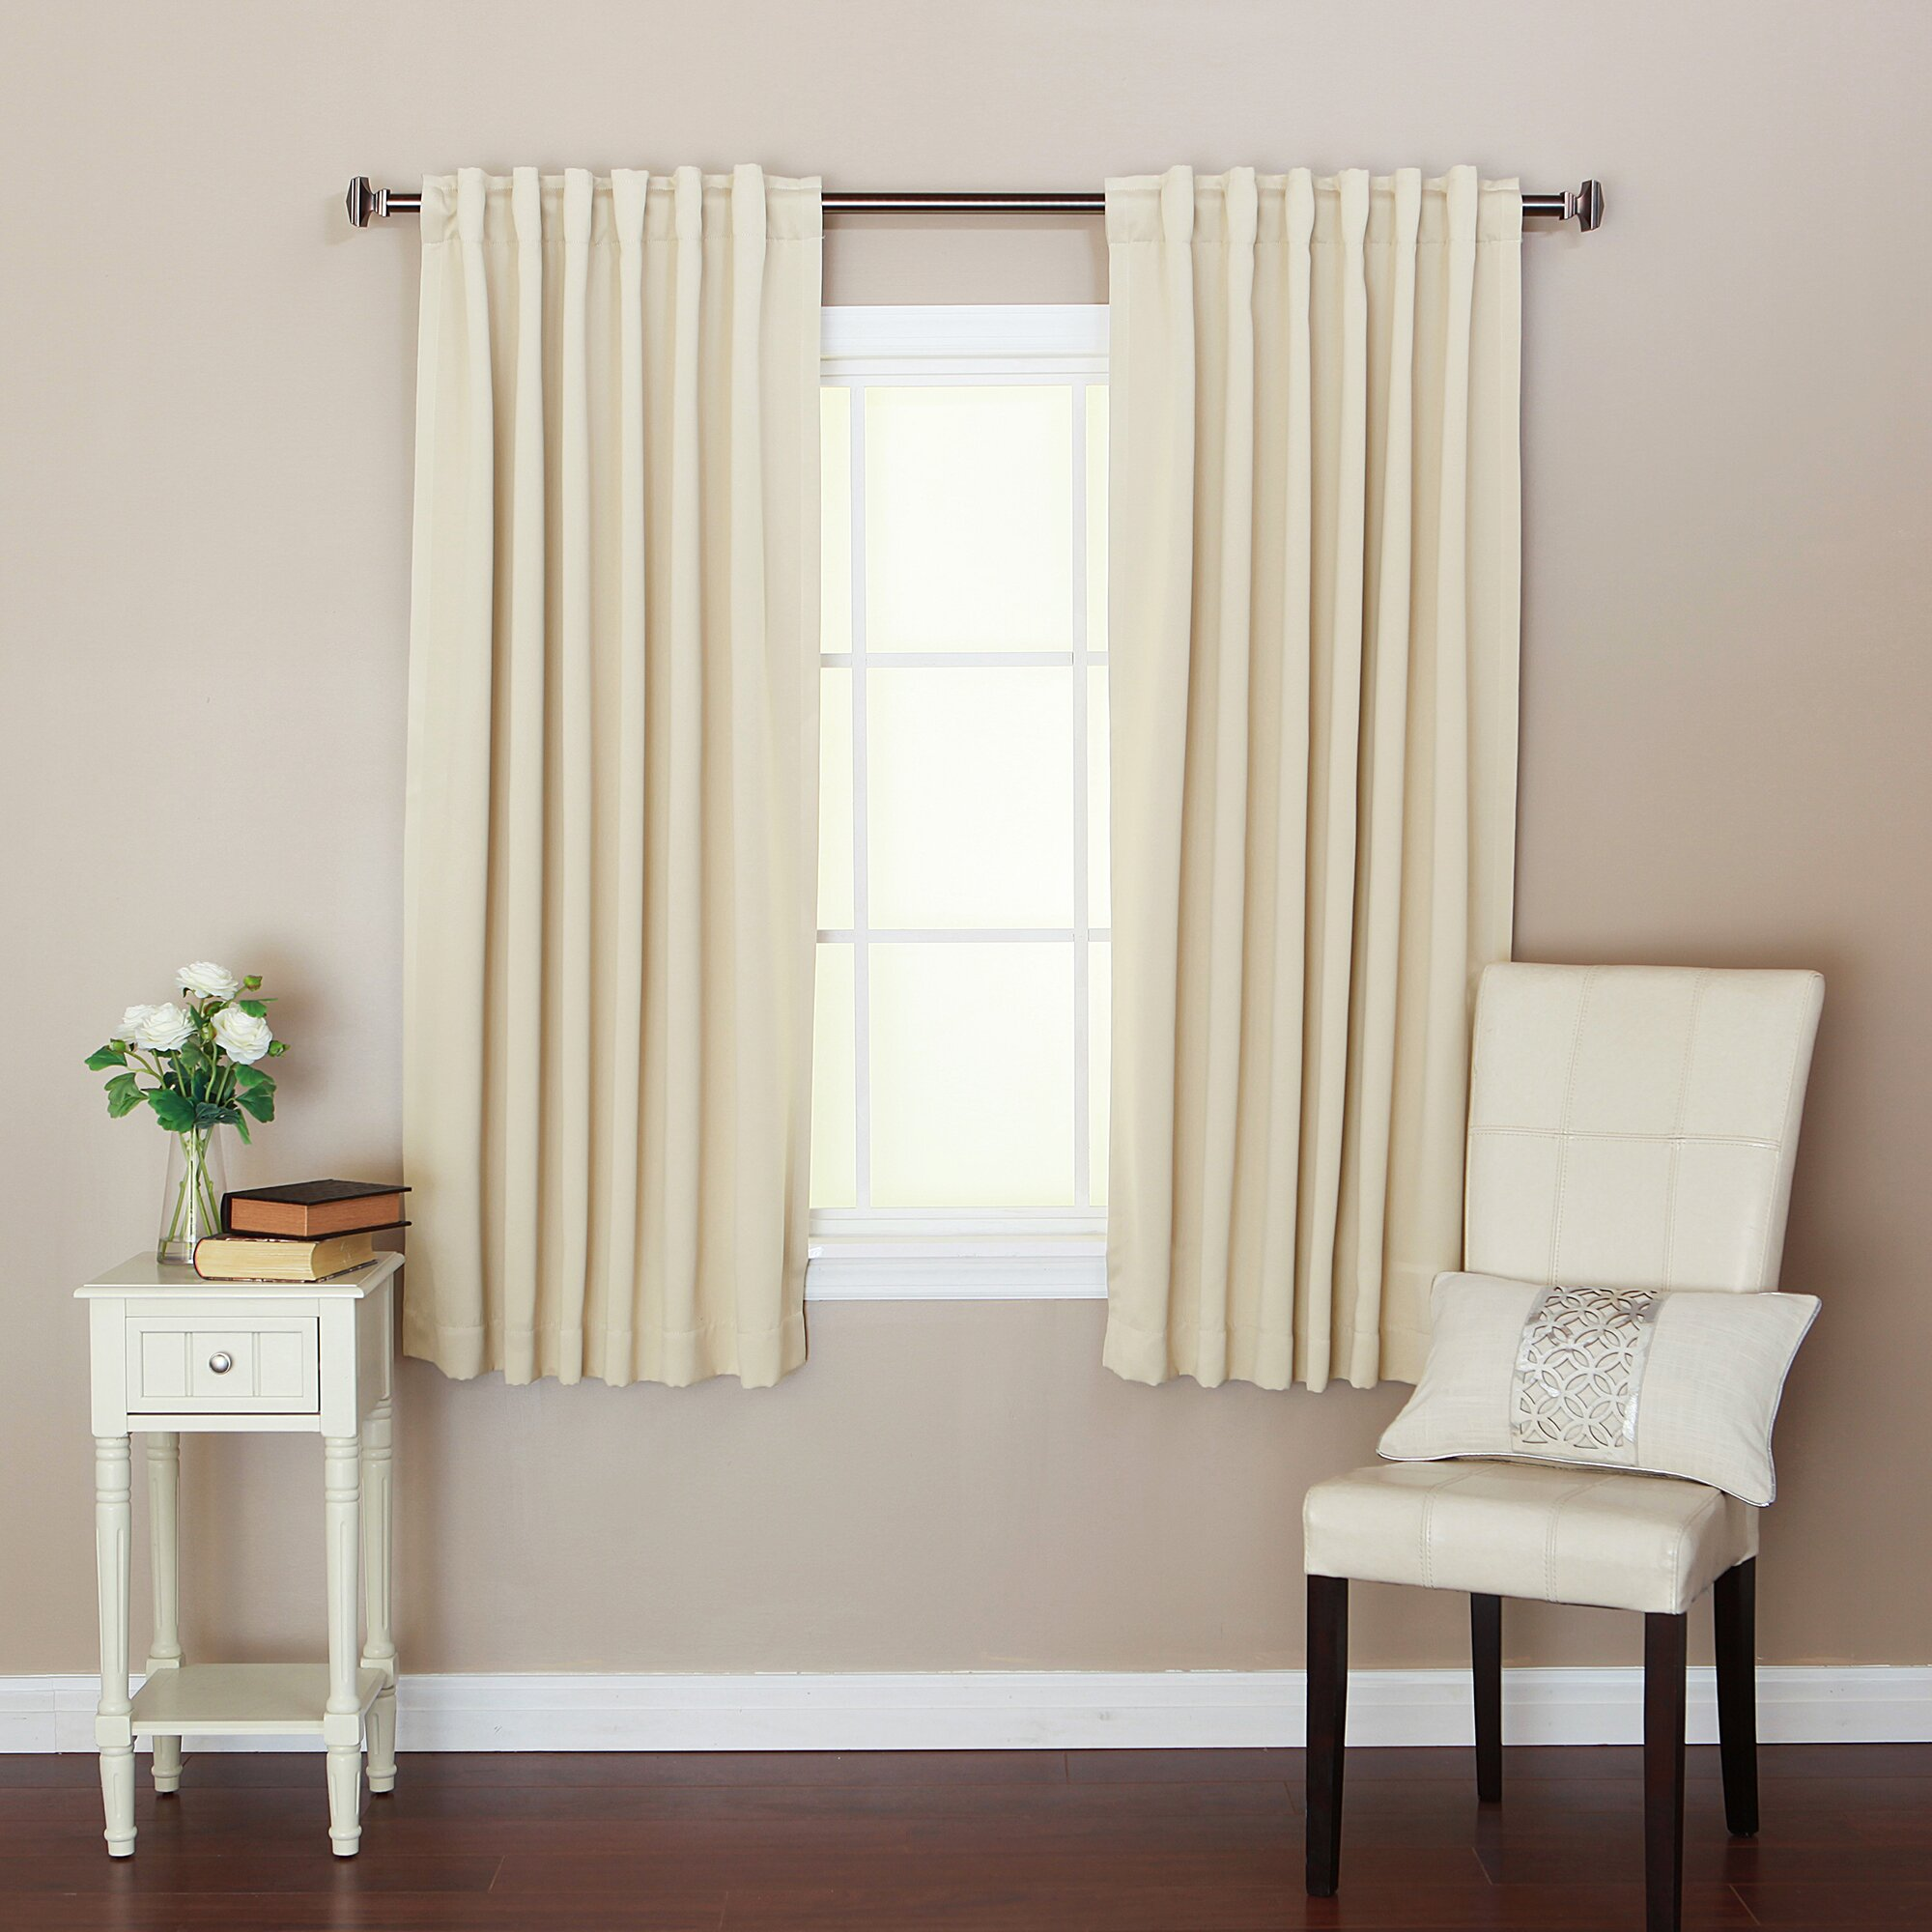 Beachcrest Home Sweetwater Room Darkening Thermal/Blackout